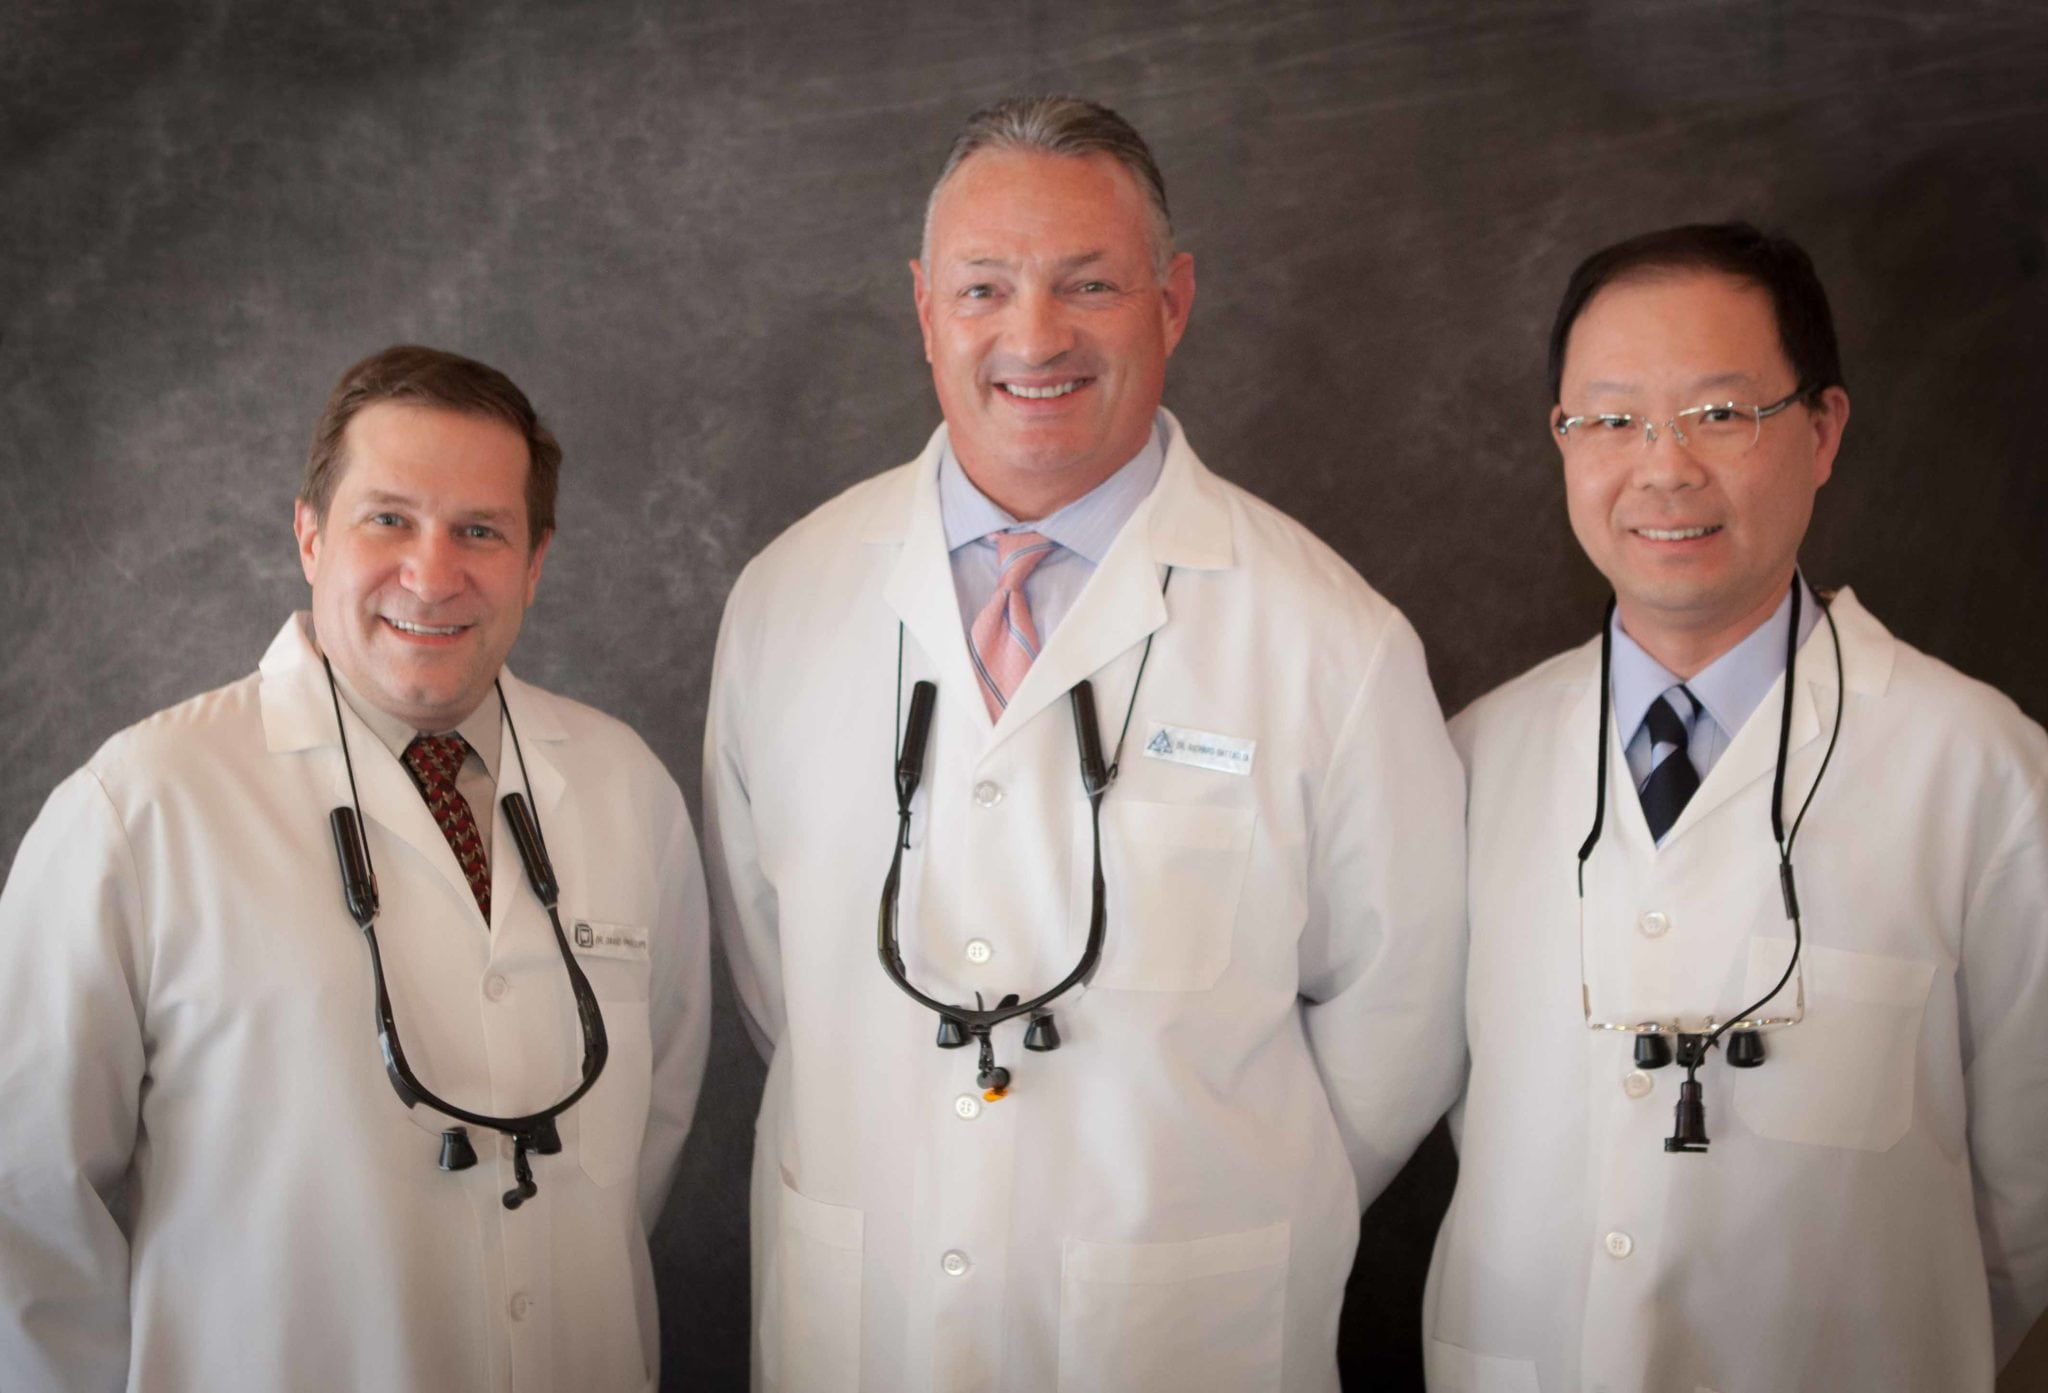 Our Doctors: Dr. David Phillips, Dr. Richard G. Battaglia, & Dr. Kuo-Tung Hsu (pictured Left-to-right)